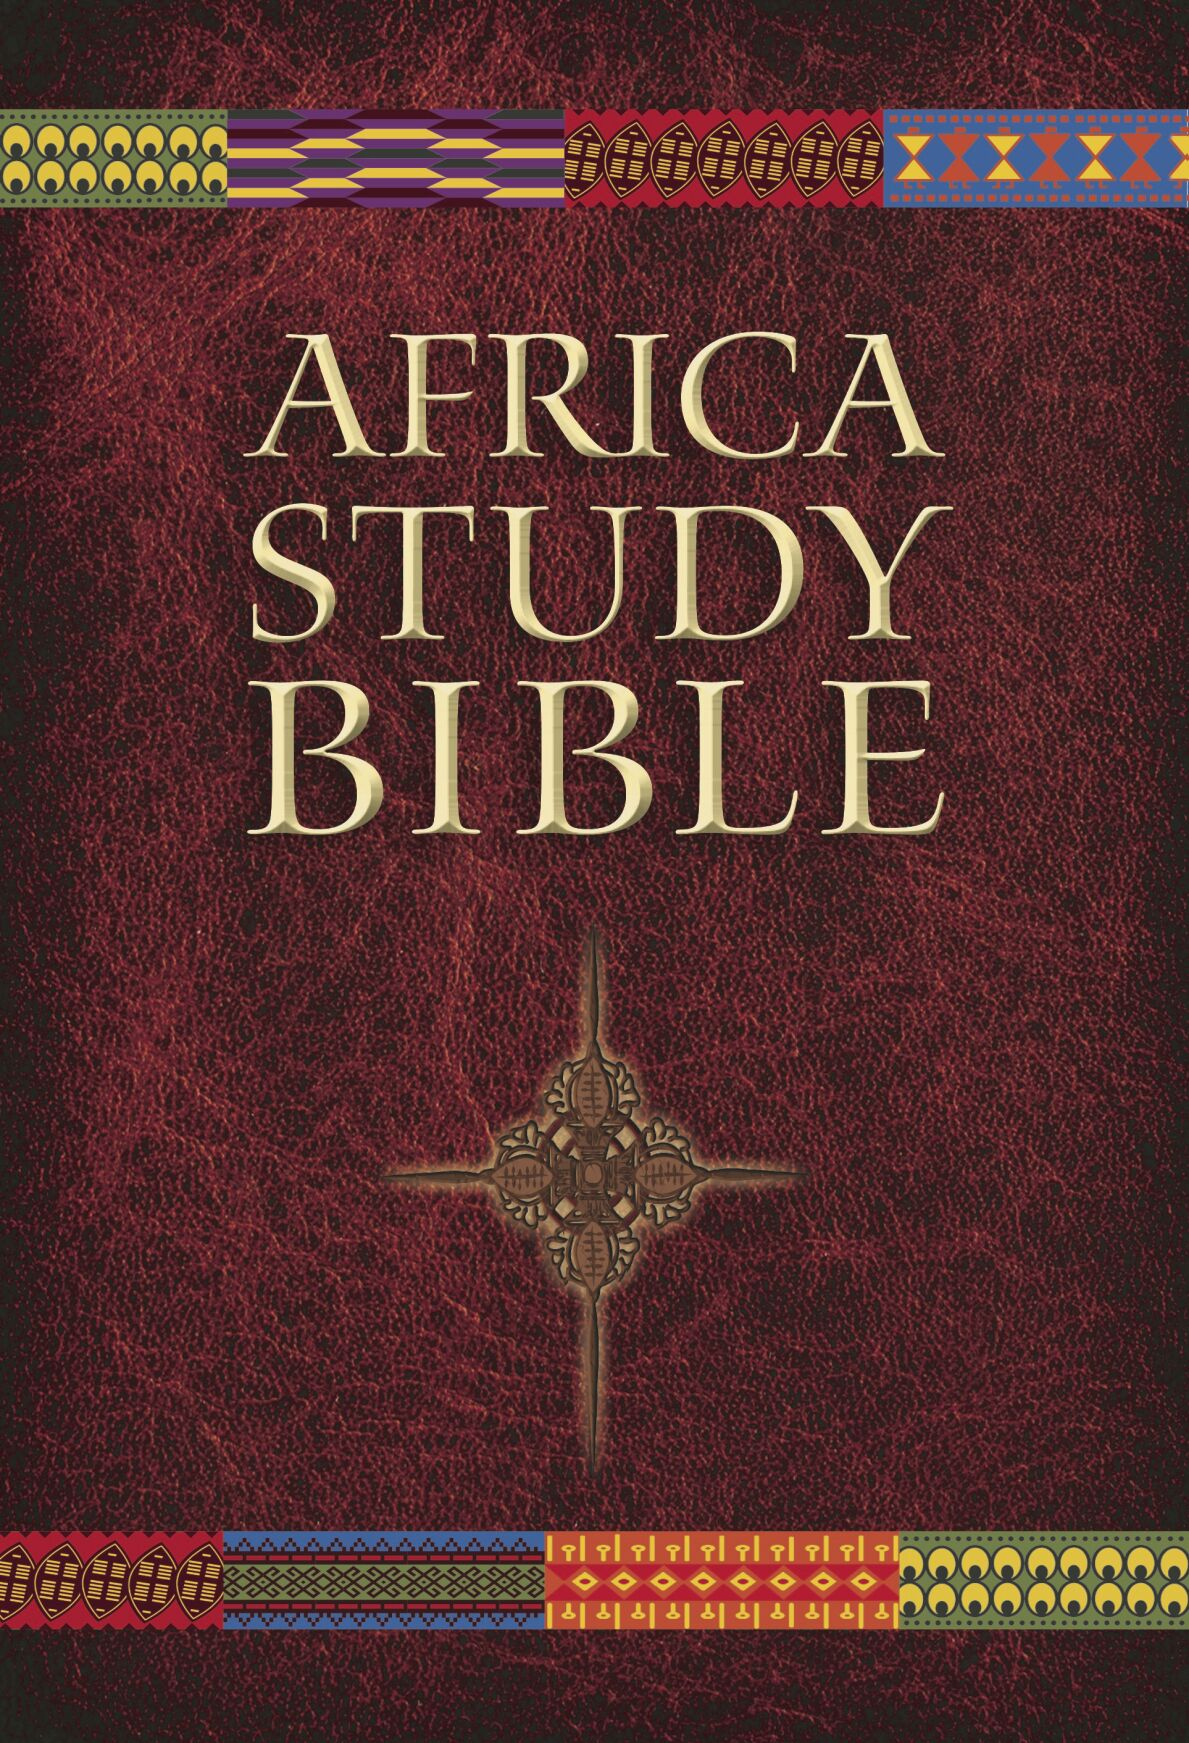 Africa Study Bible cover.jpg